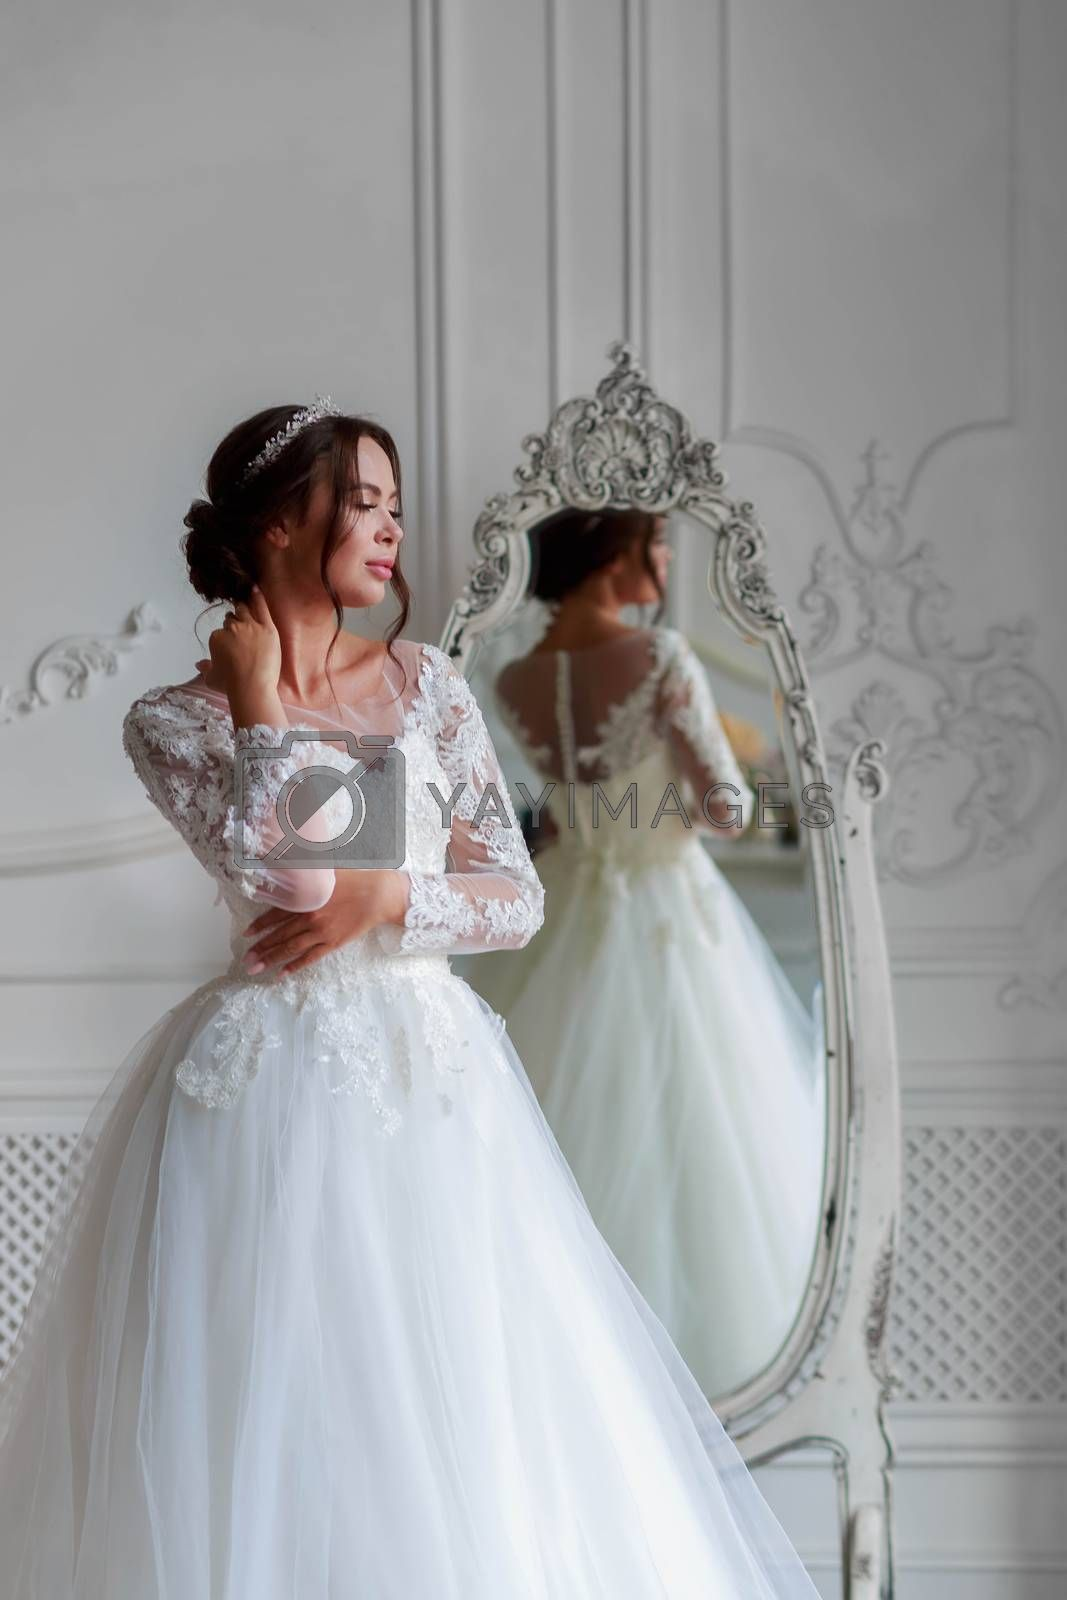 Portrait of a bride in a white wedding dress looks attentively aside.